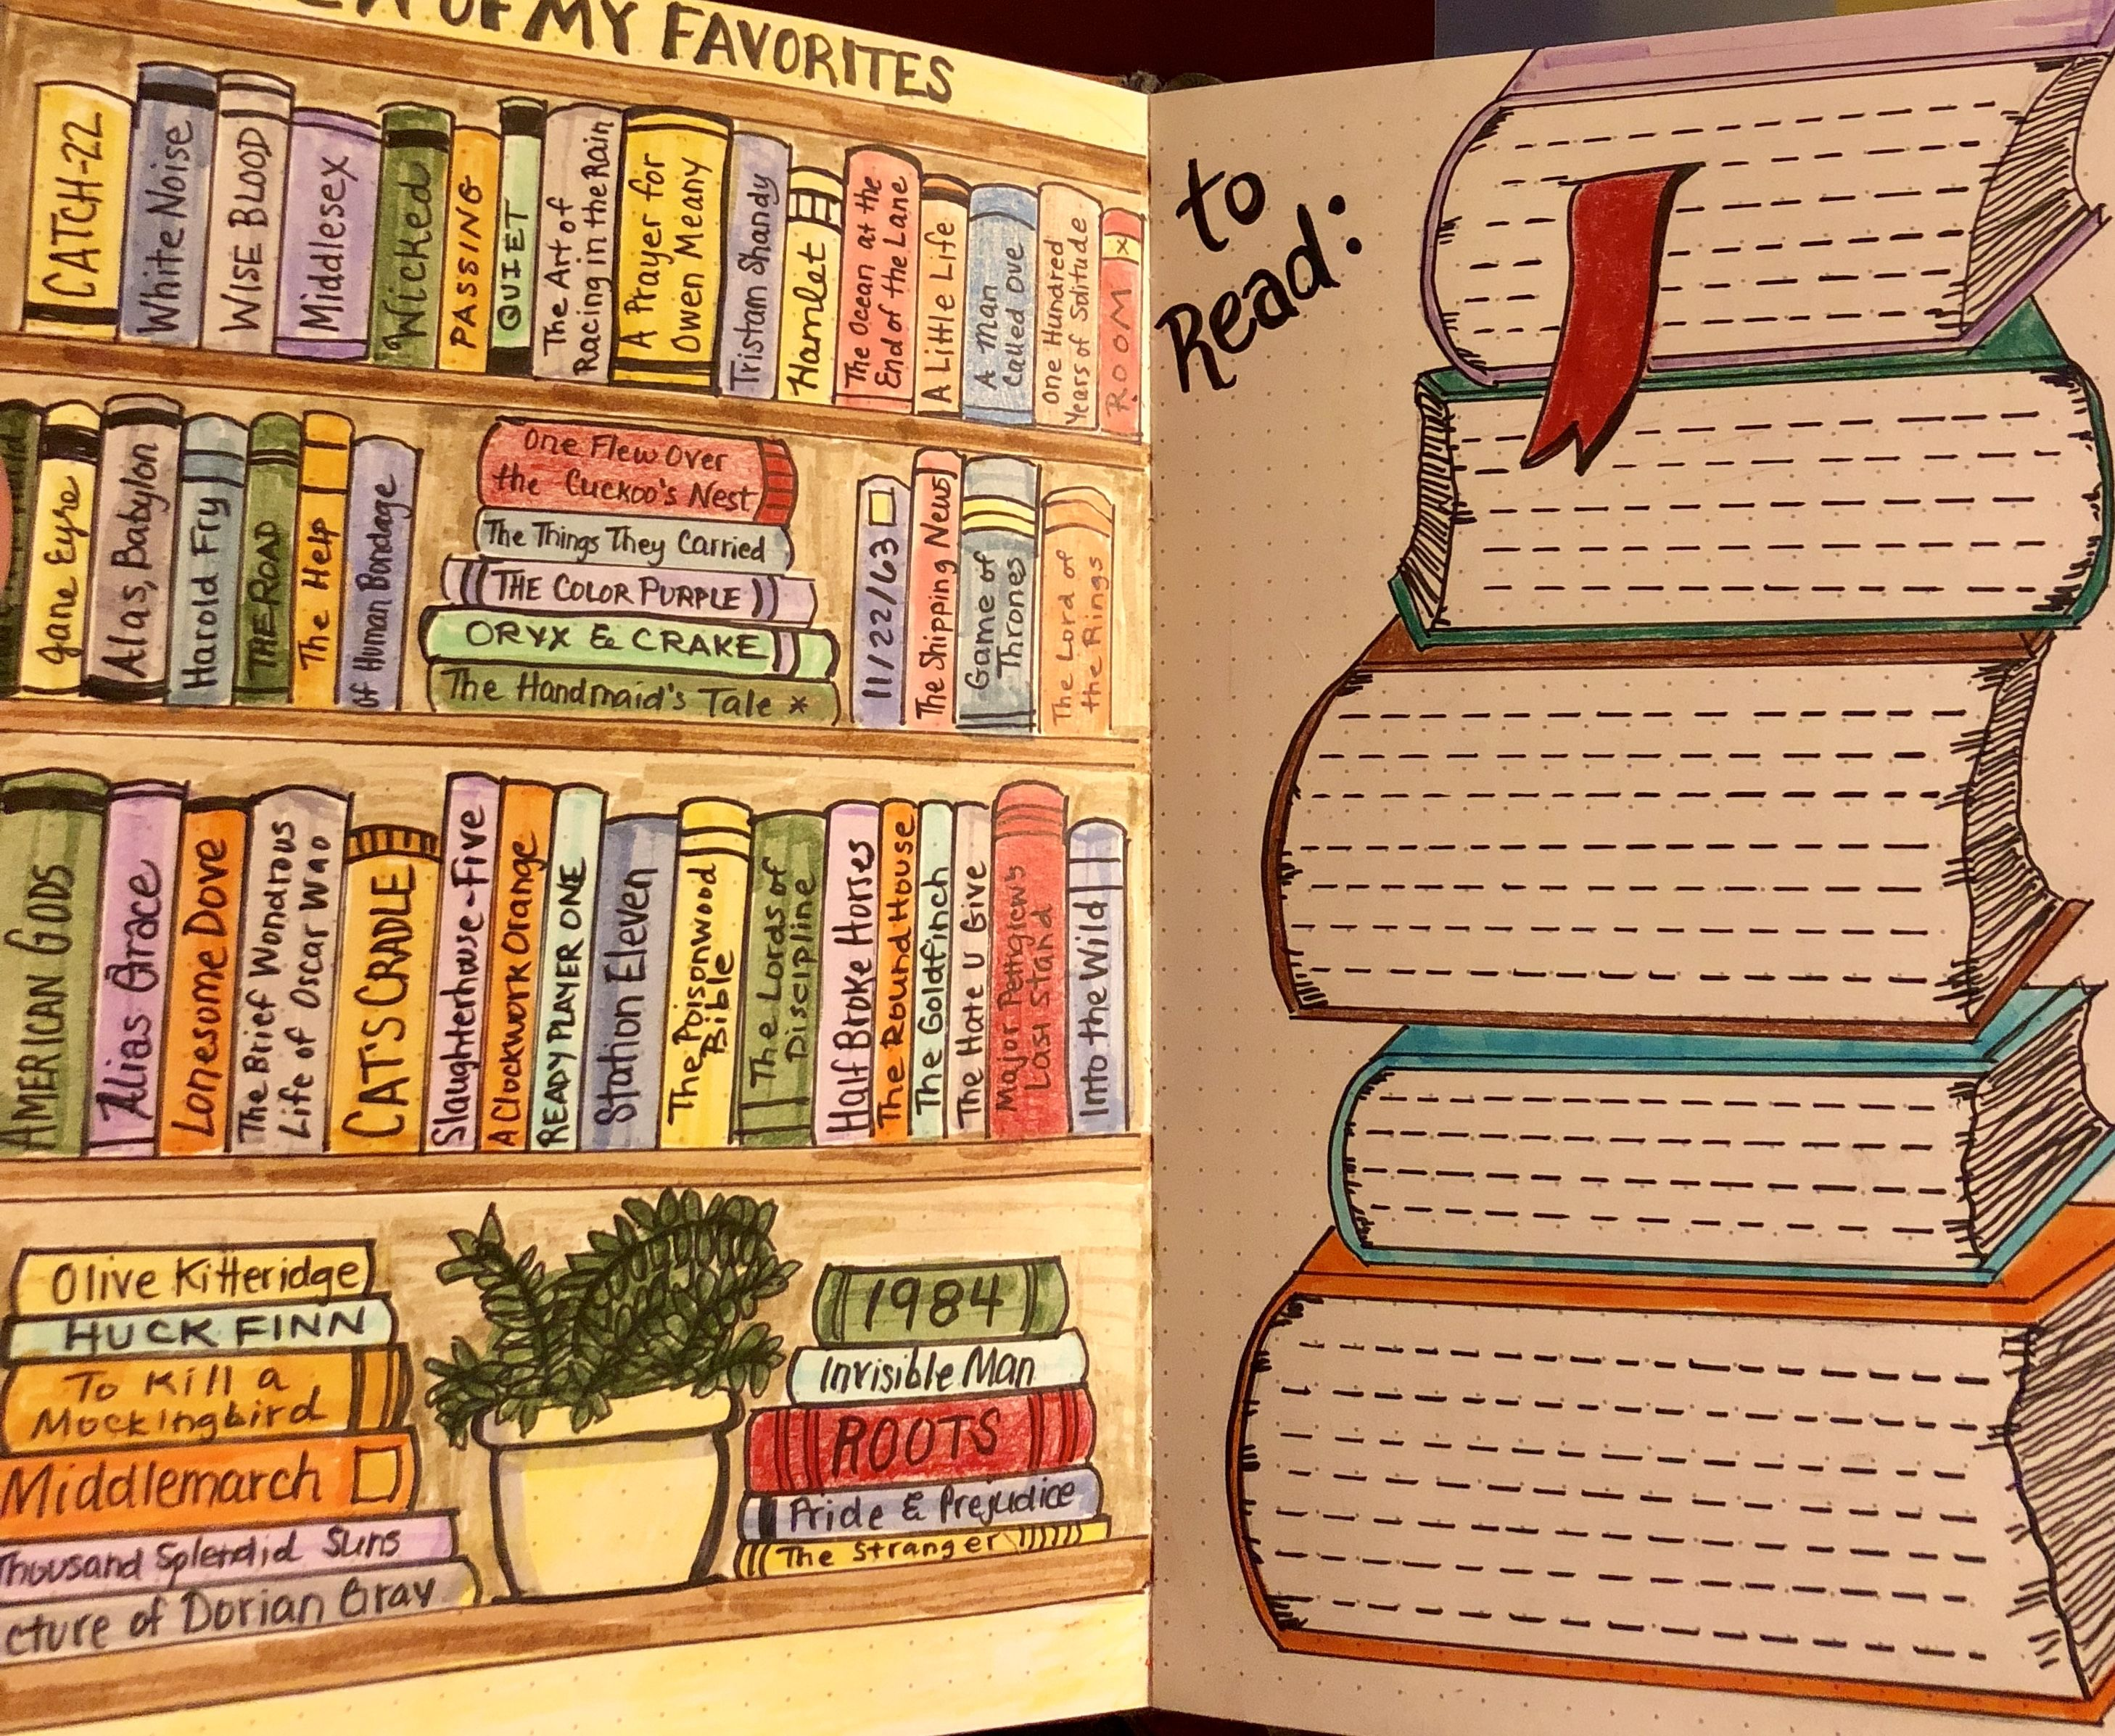 Favorite Books And Books To Read Bujo Bulletjournal Bullet Journal Books Bullet Journal Ideas Pages Planner Bullet Journal